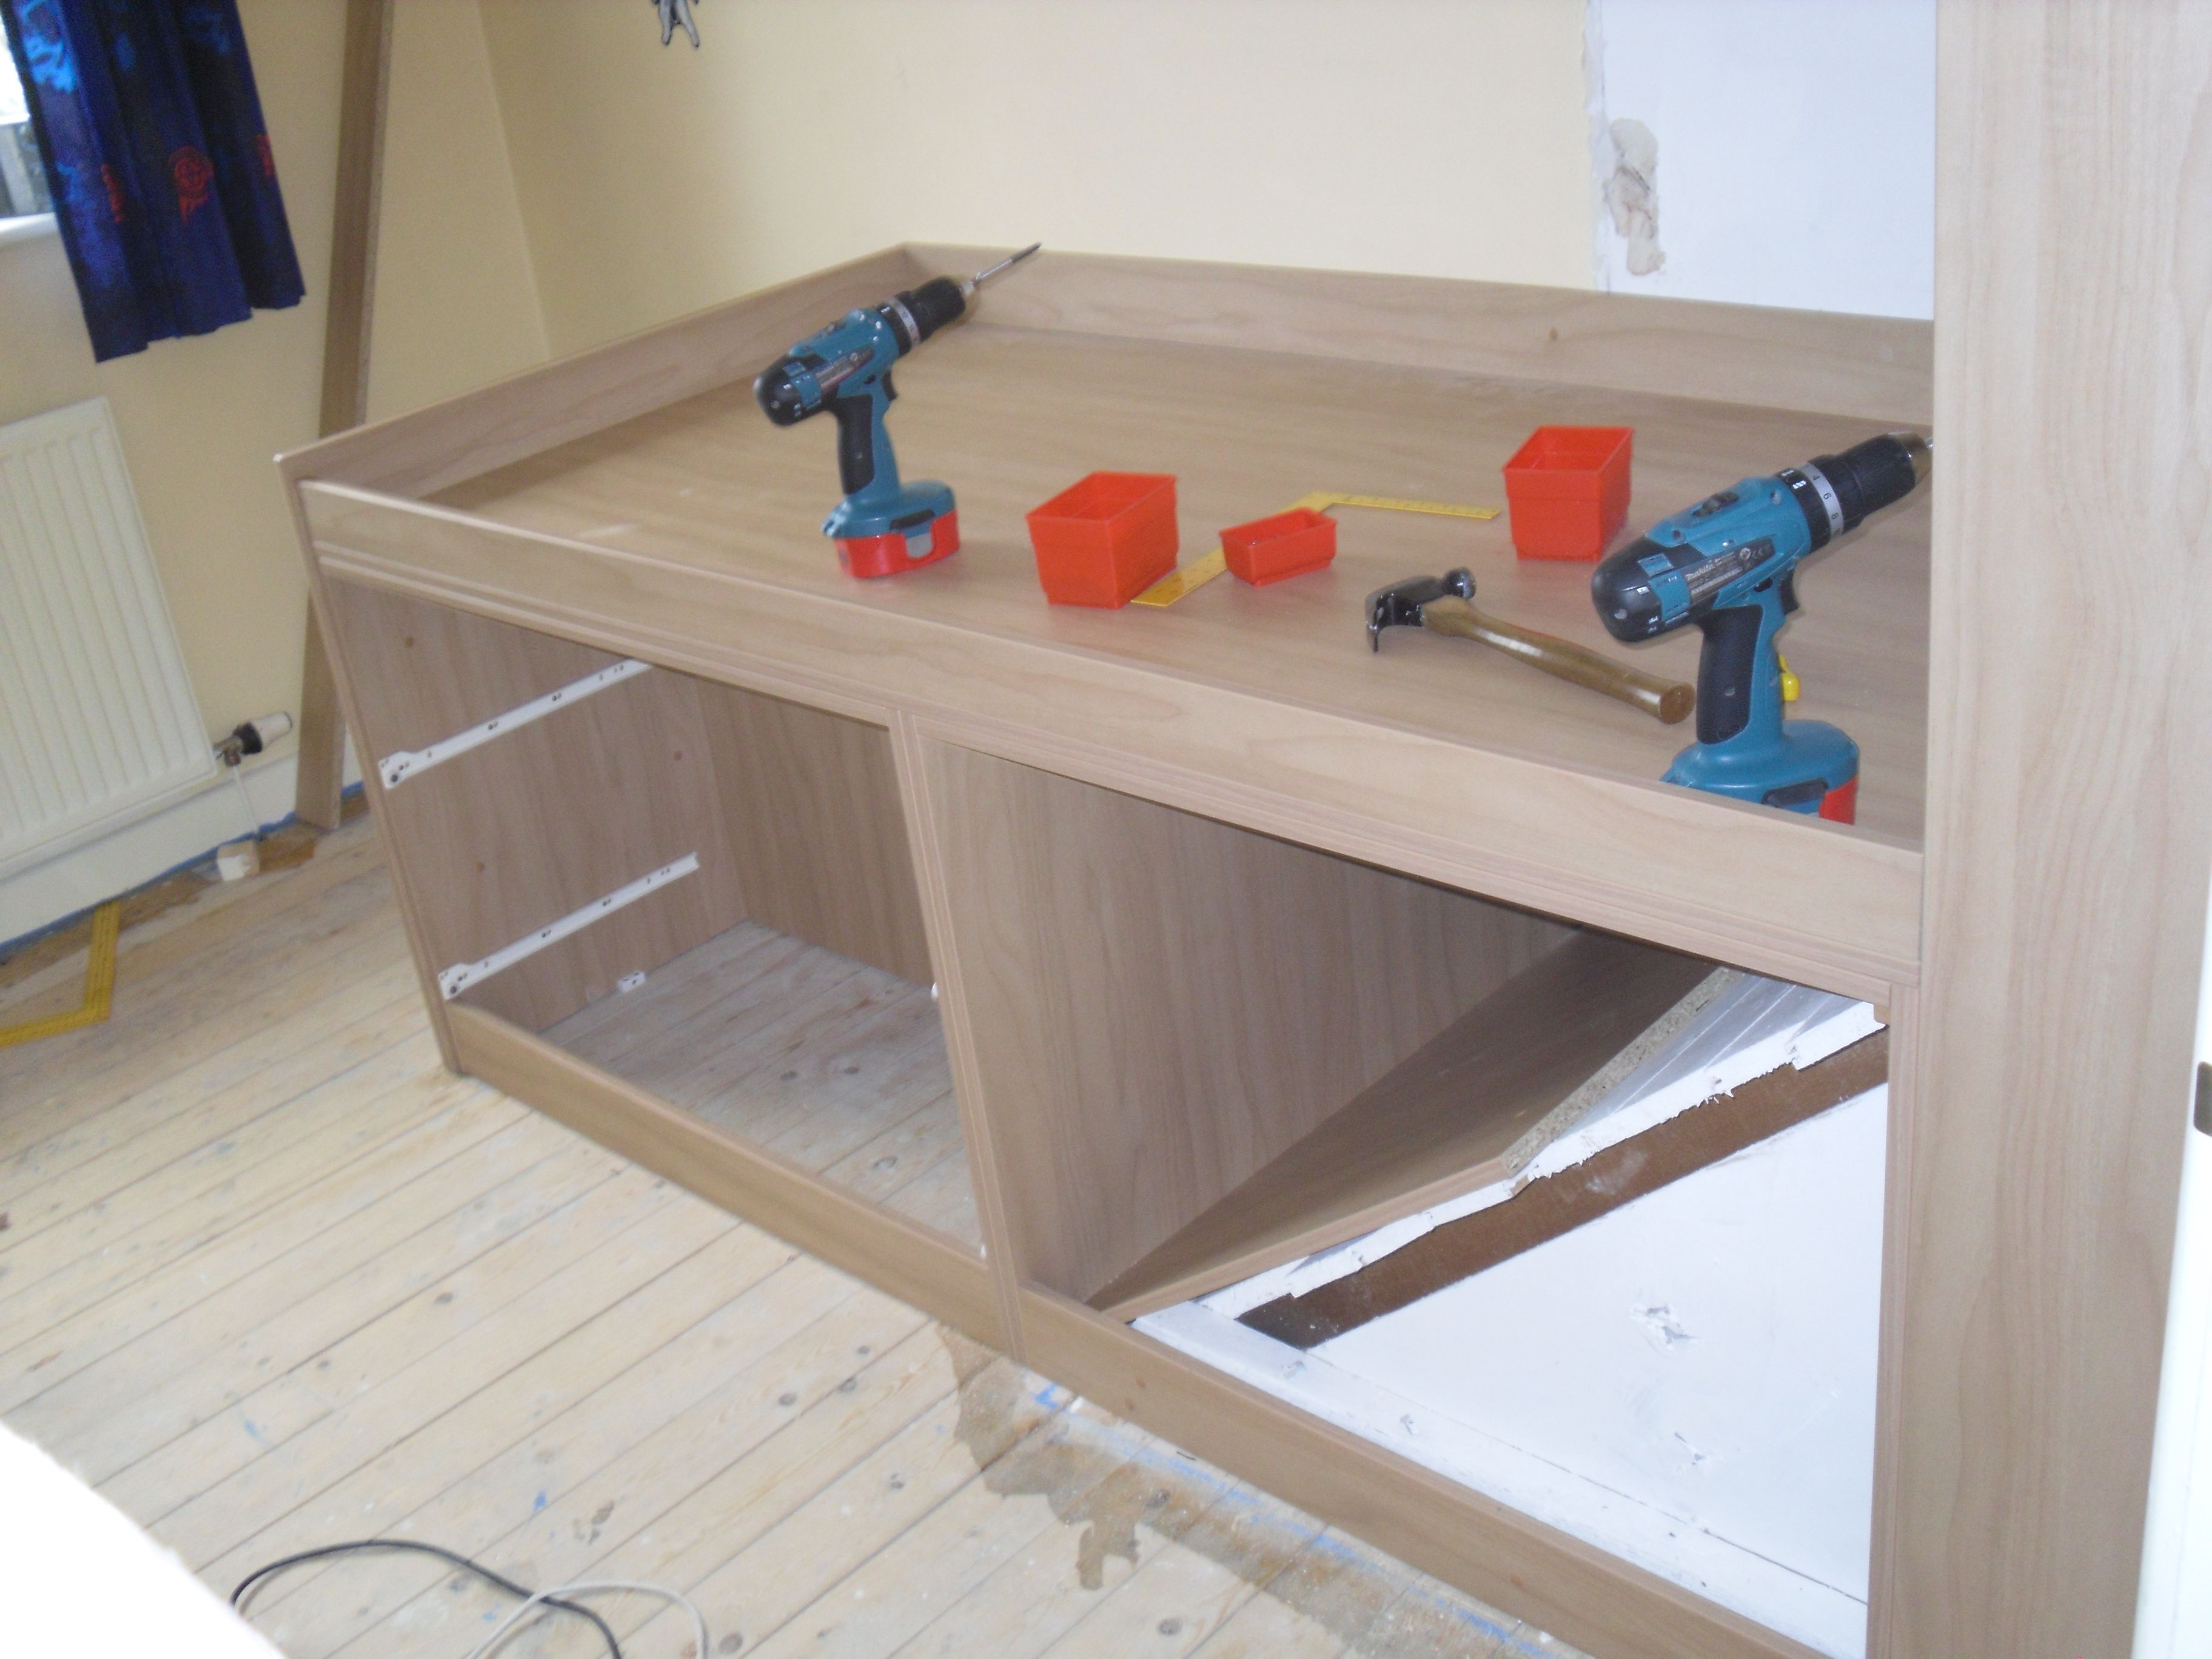 Small Beds For Box Rooms Build Bed Over Stair Box Google Search Great Idea For